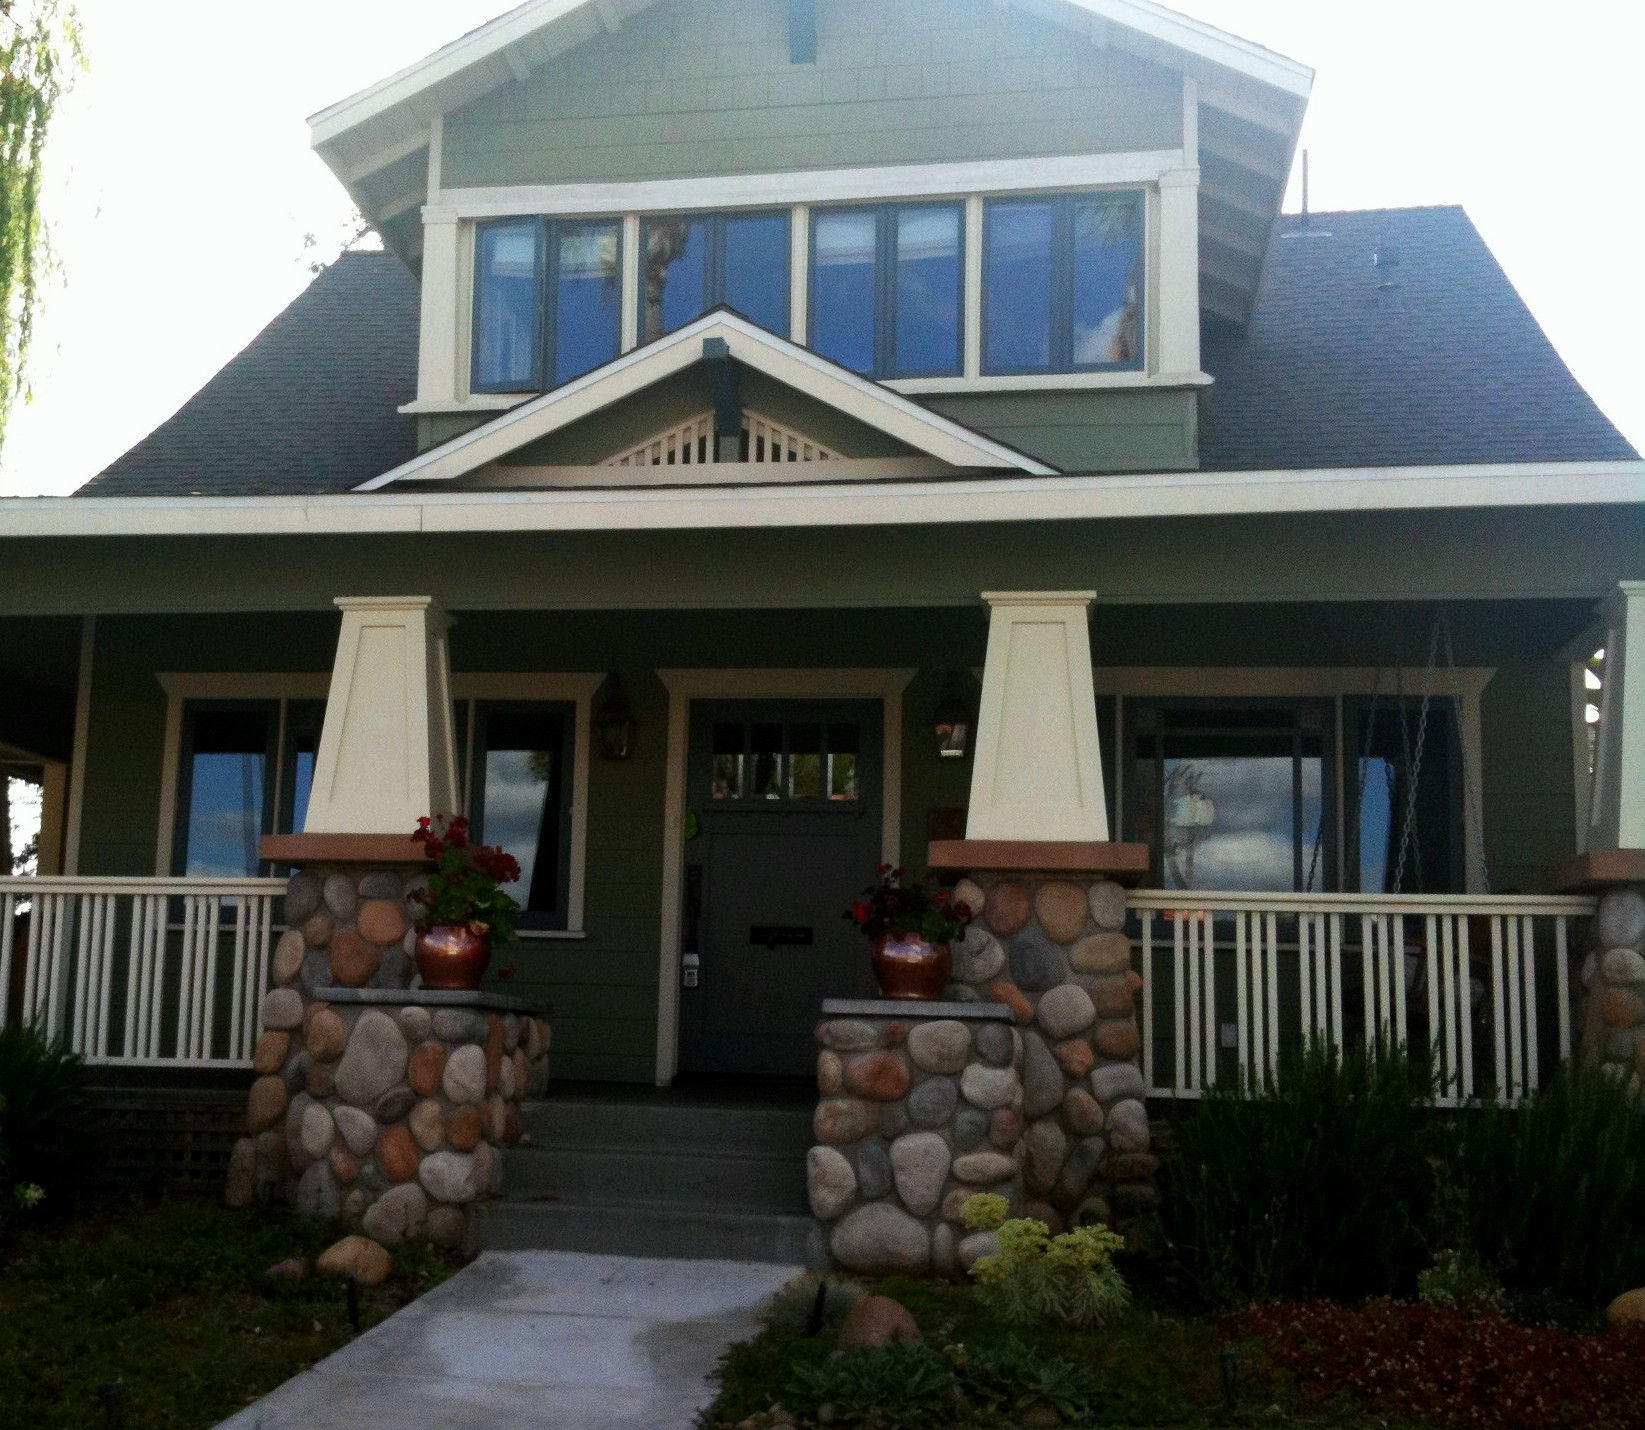 Craftsman Style Houses At Home With Cheri